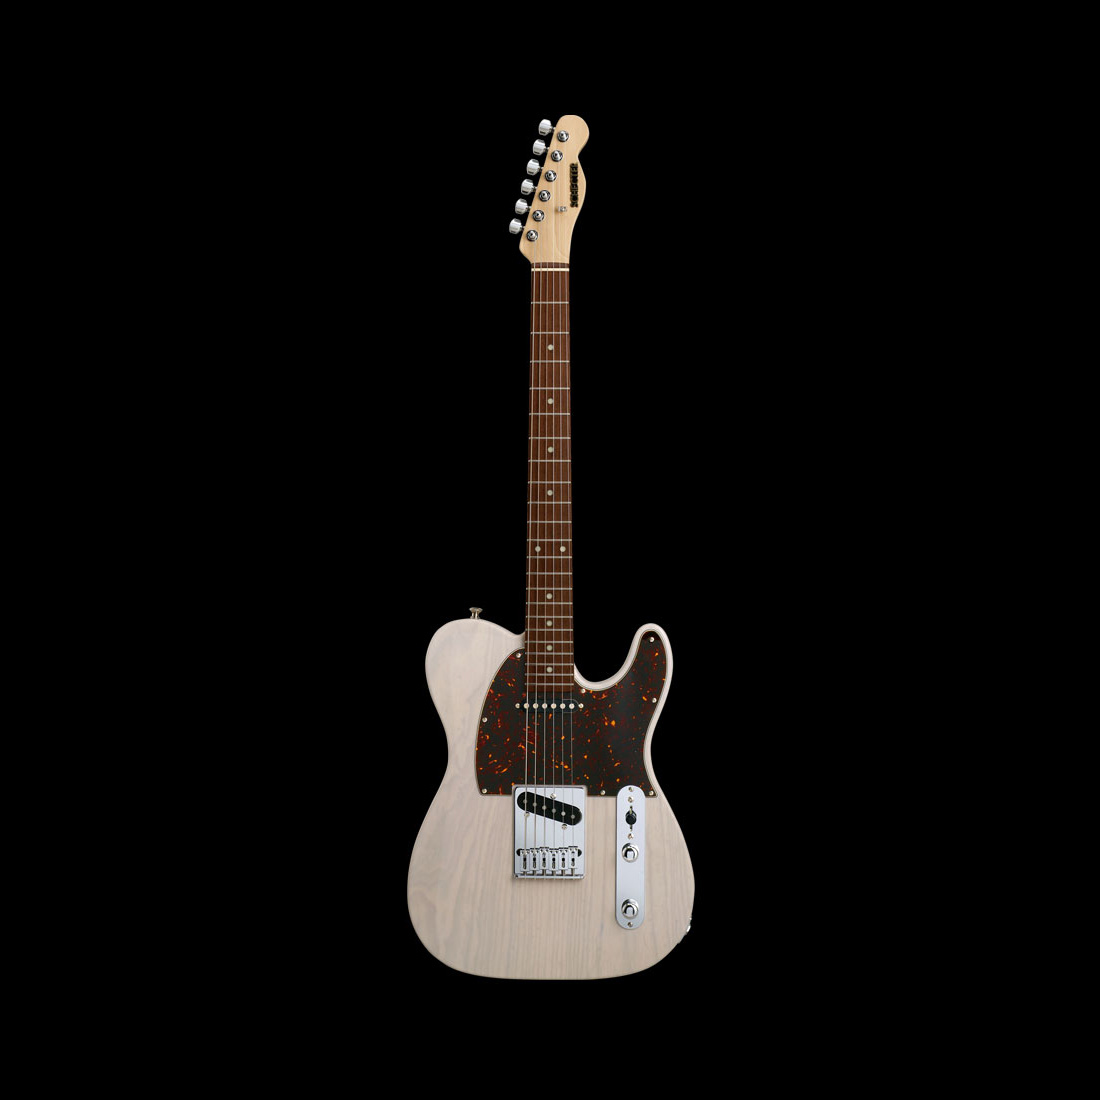 Schecter / AC-TK-TE-WH/SIG Blond シェクター エレキギター TKシグネイチャー 《受注生産:予約受付中》